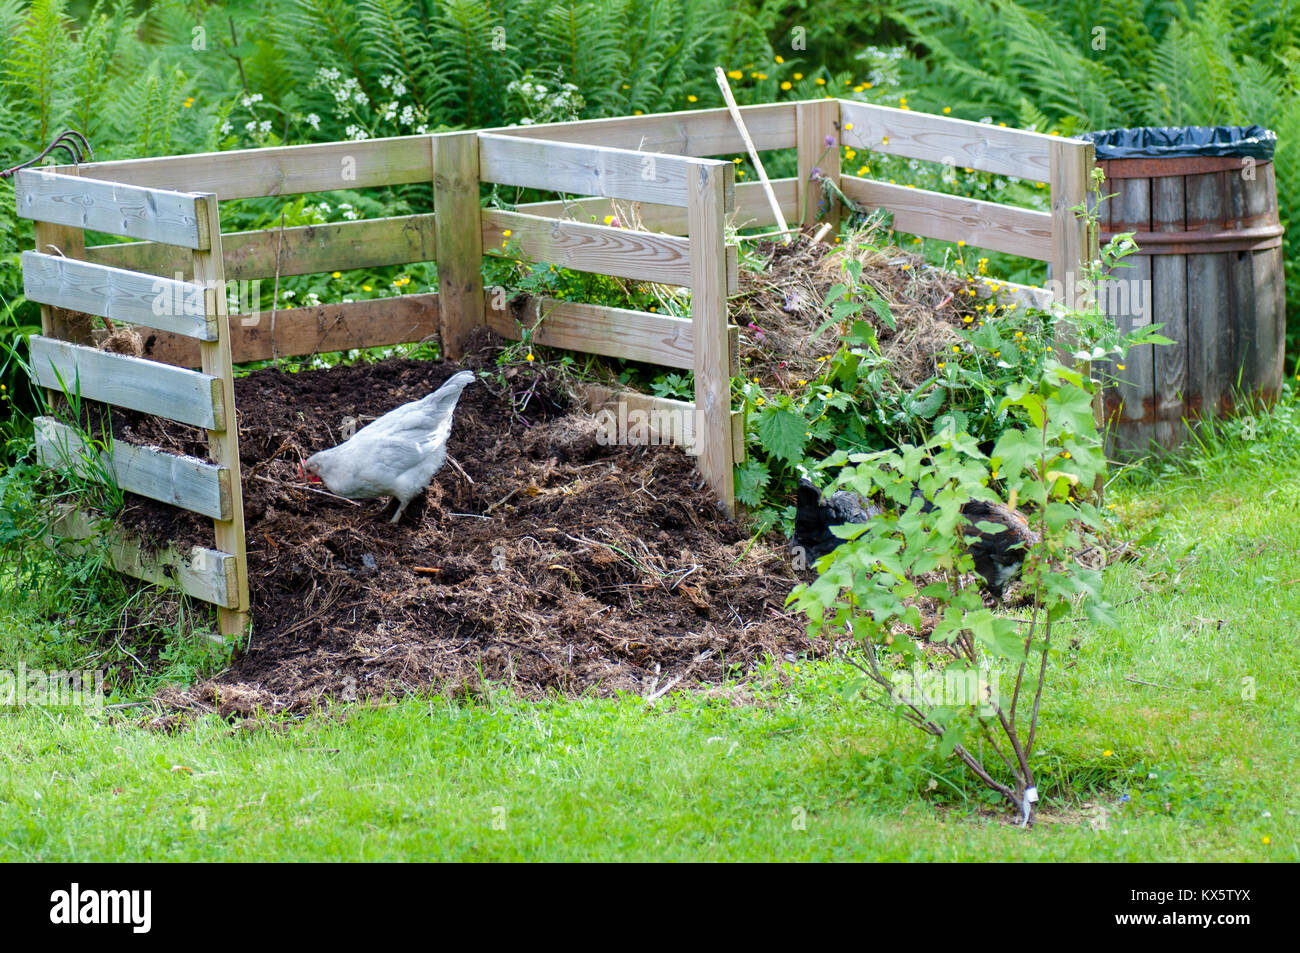 compost farm stockfotos compost farm bilder alamy. Black Bedroom Furniture Sets. Home Design Ideas